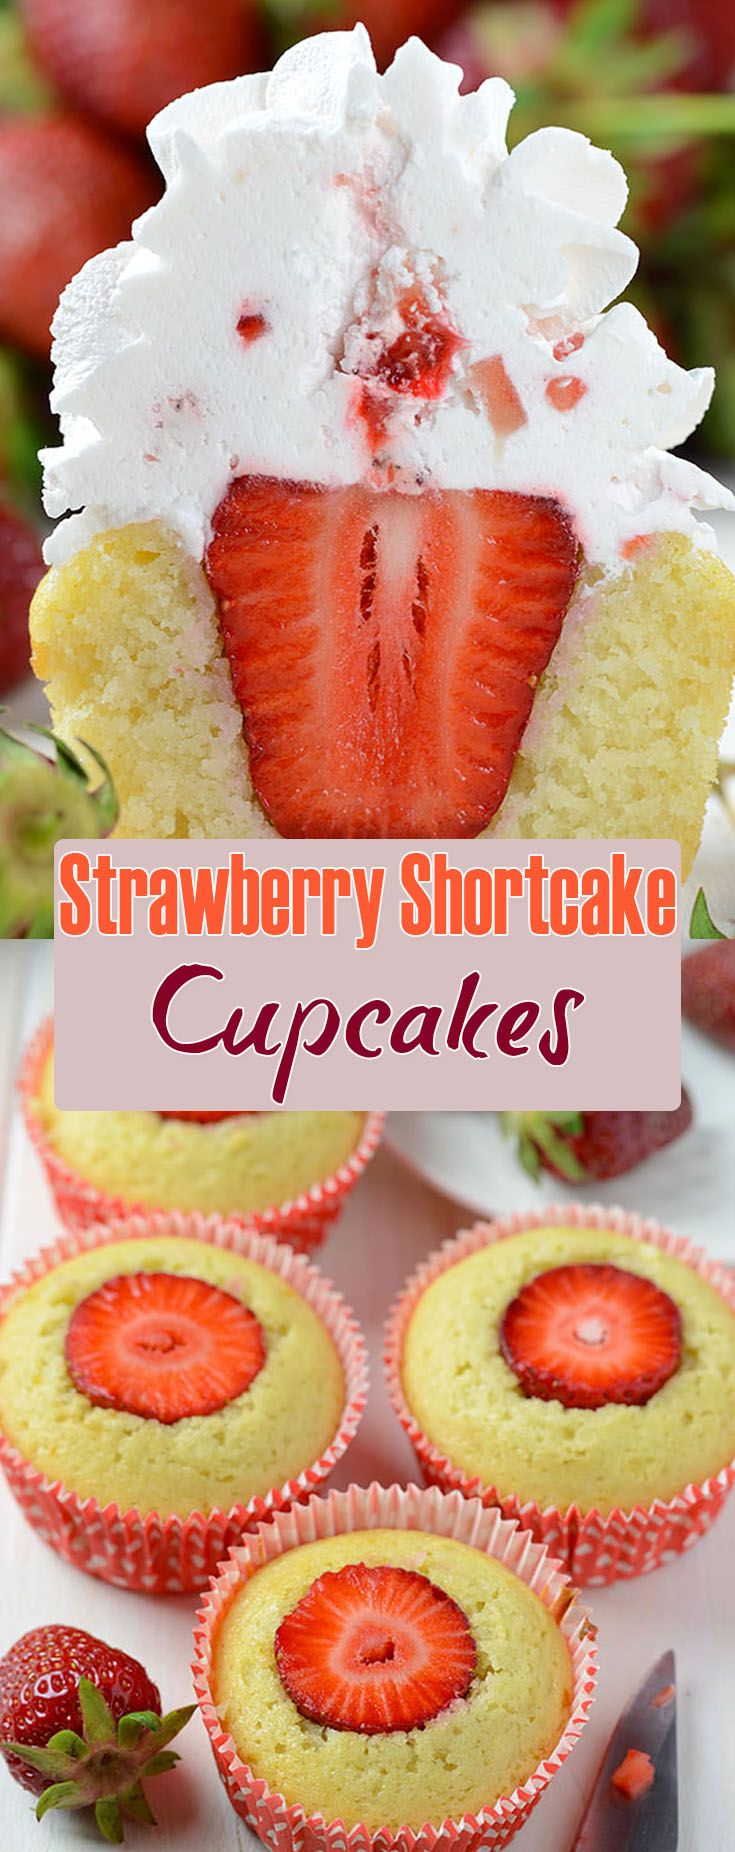 35 Strawberry Shortcake Recipes Celebrating Your Love For Berries and Cream